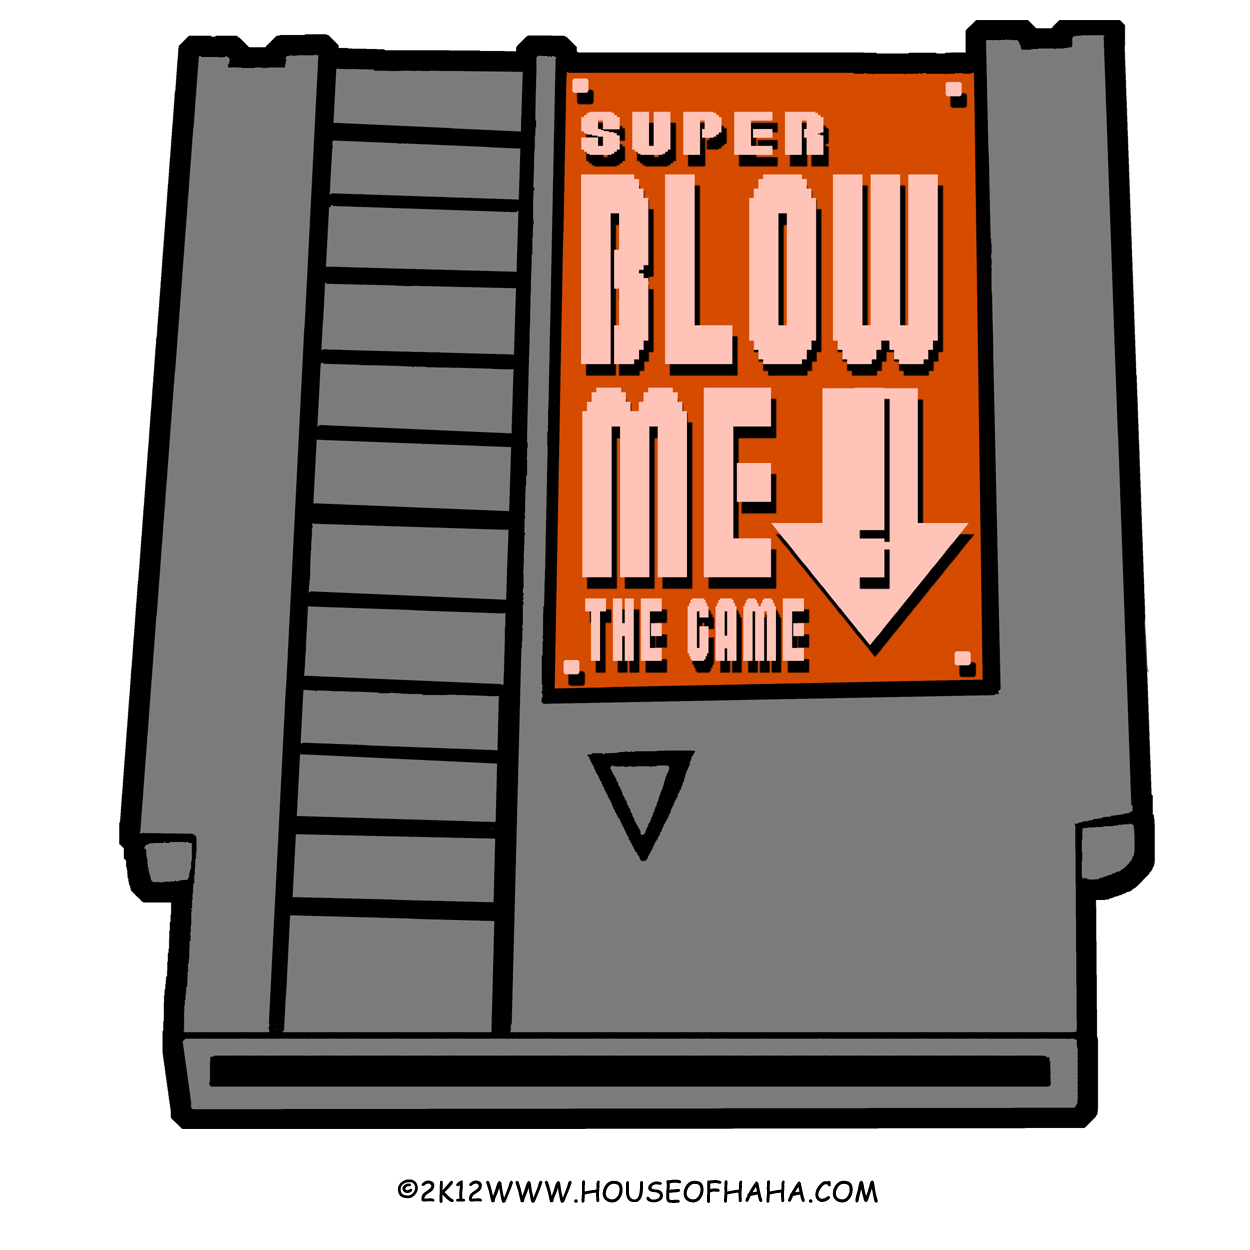 Super Blow Me: The Game